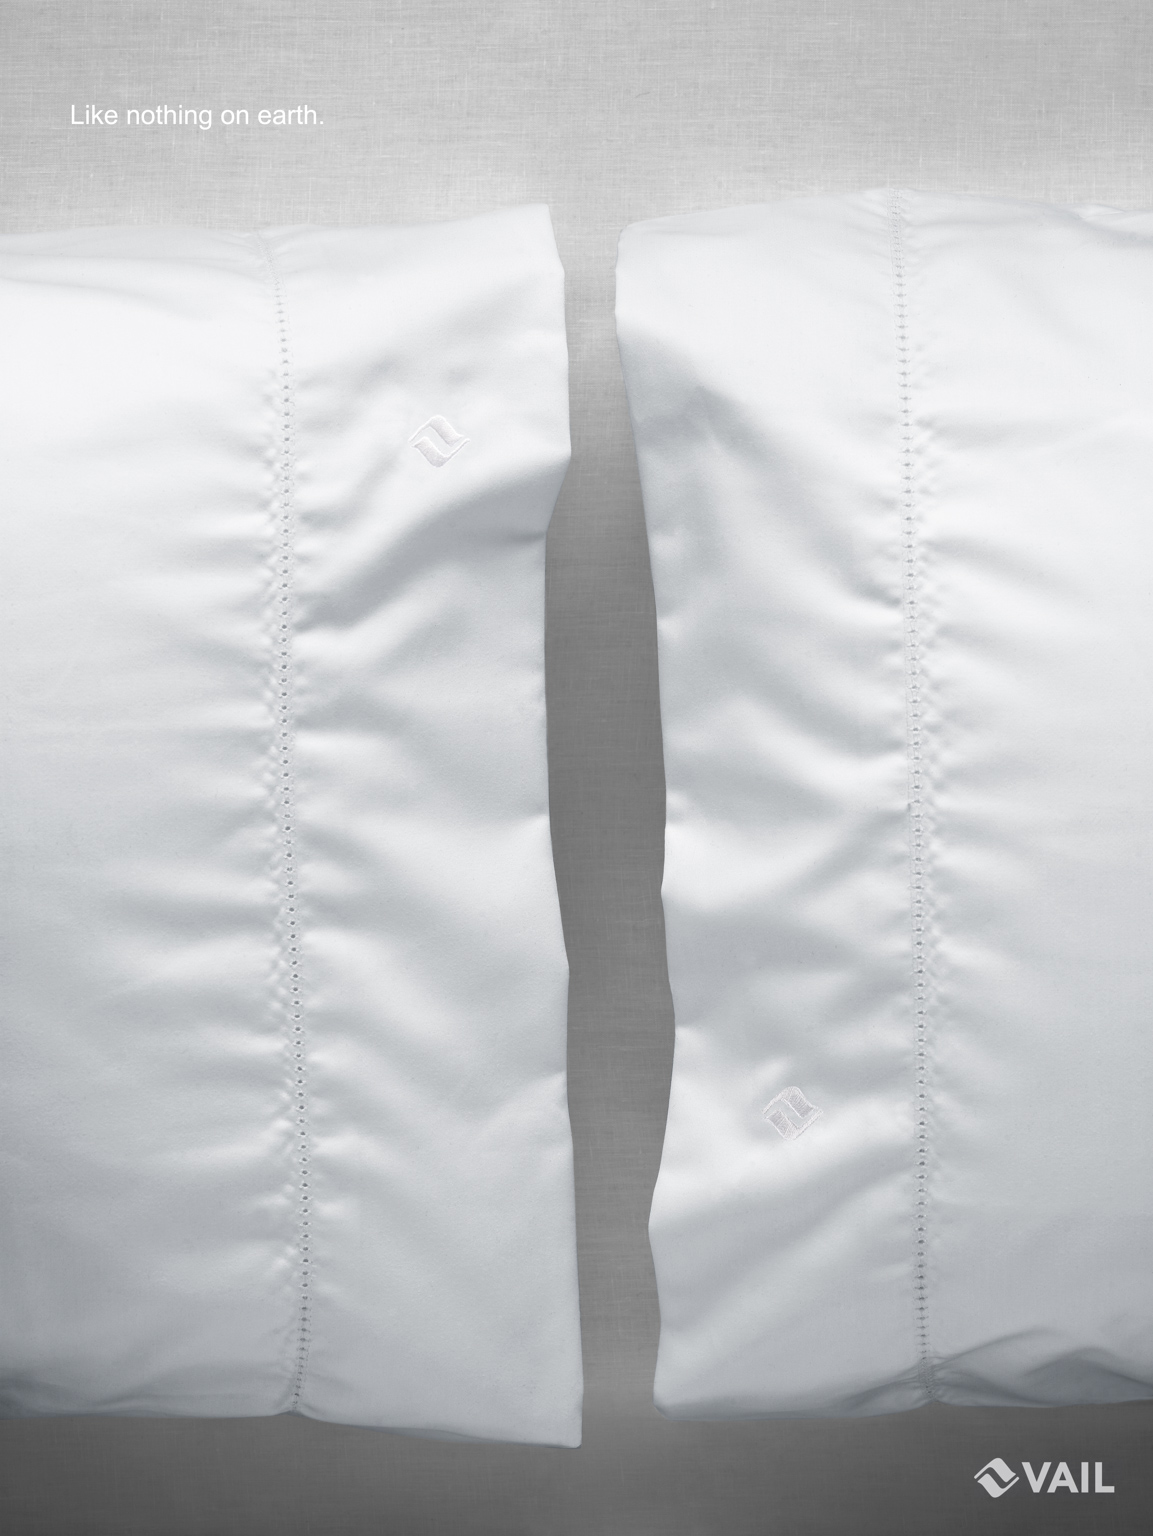 042_pillows_028_ad